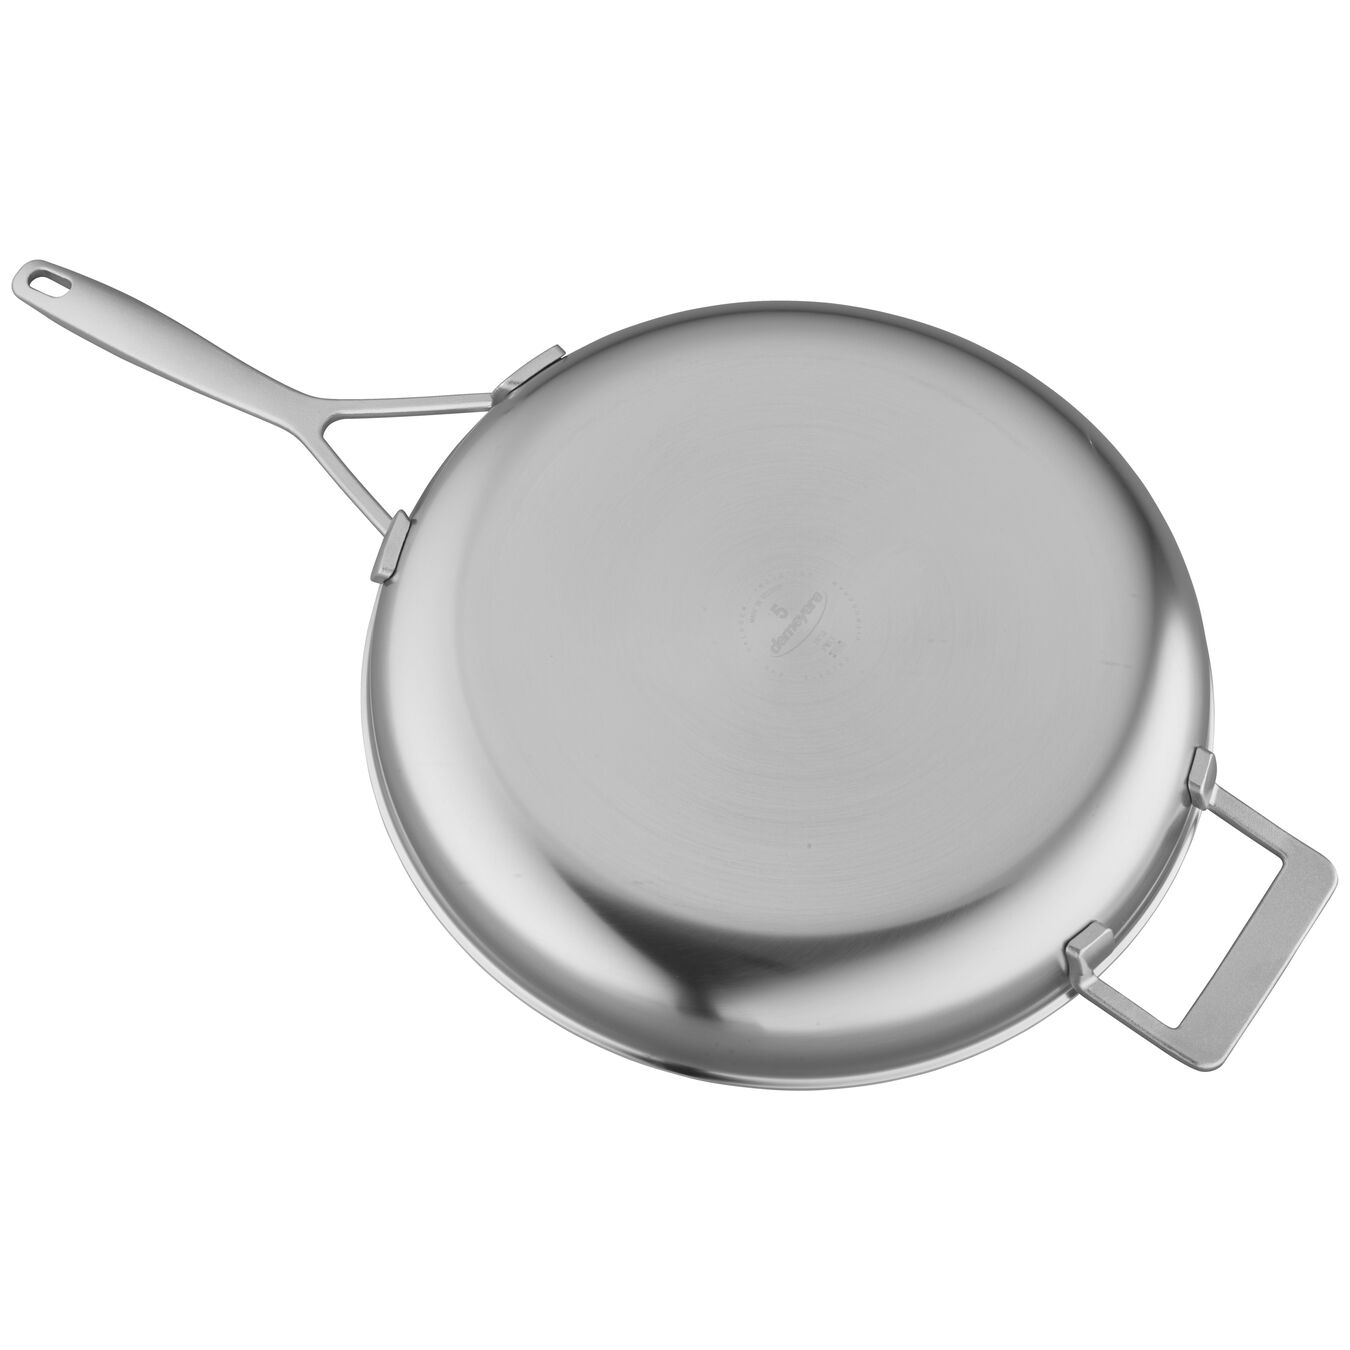 32 cm / 12.5 inch 18/10 Stainless Steel Frying pan,,large 2